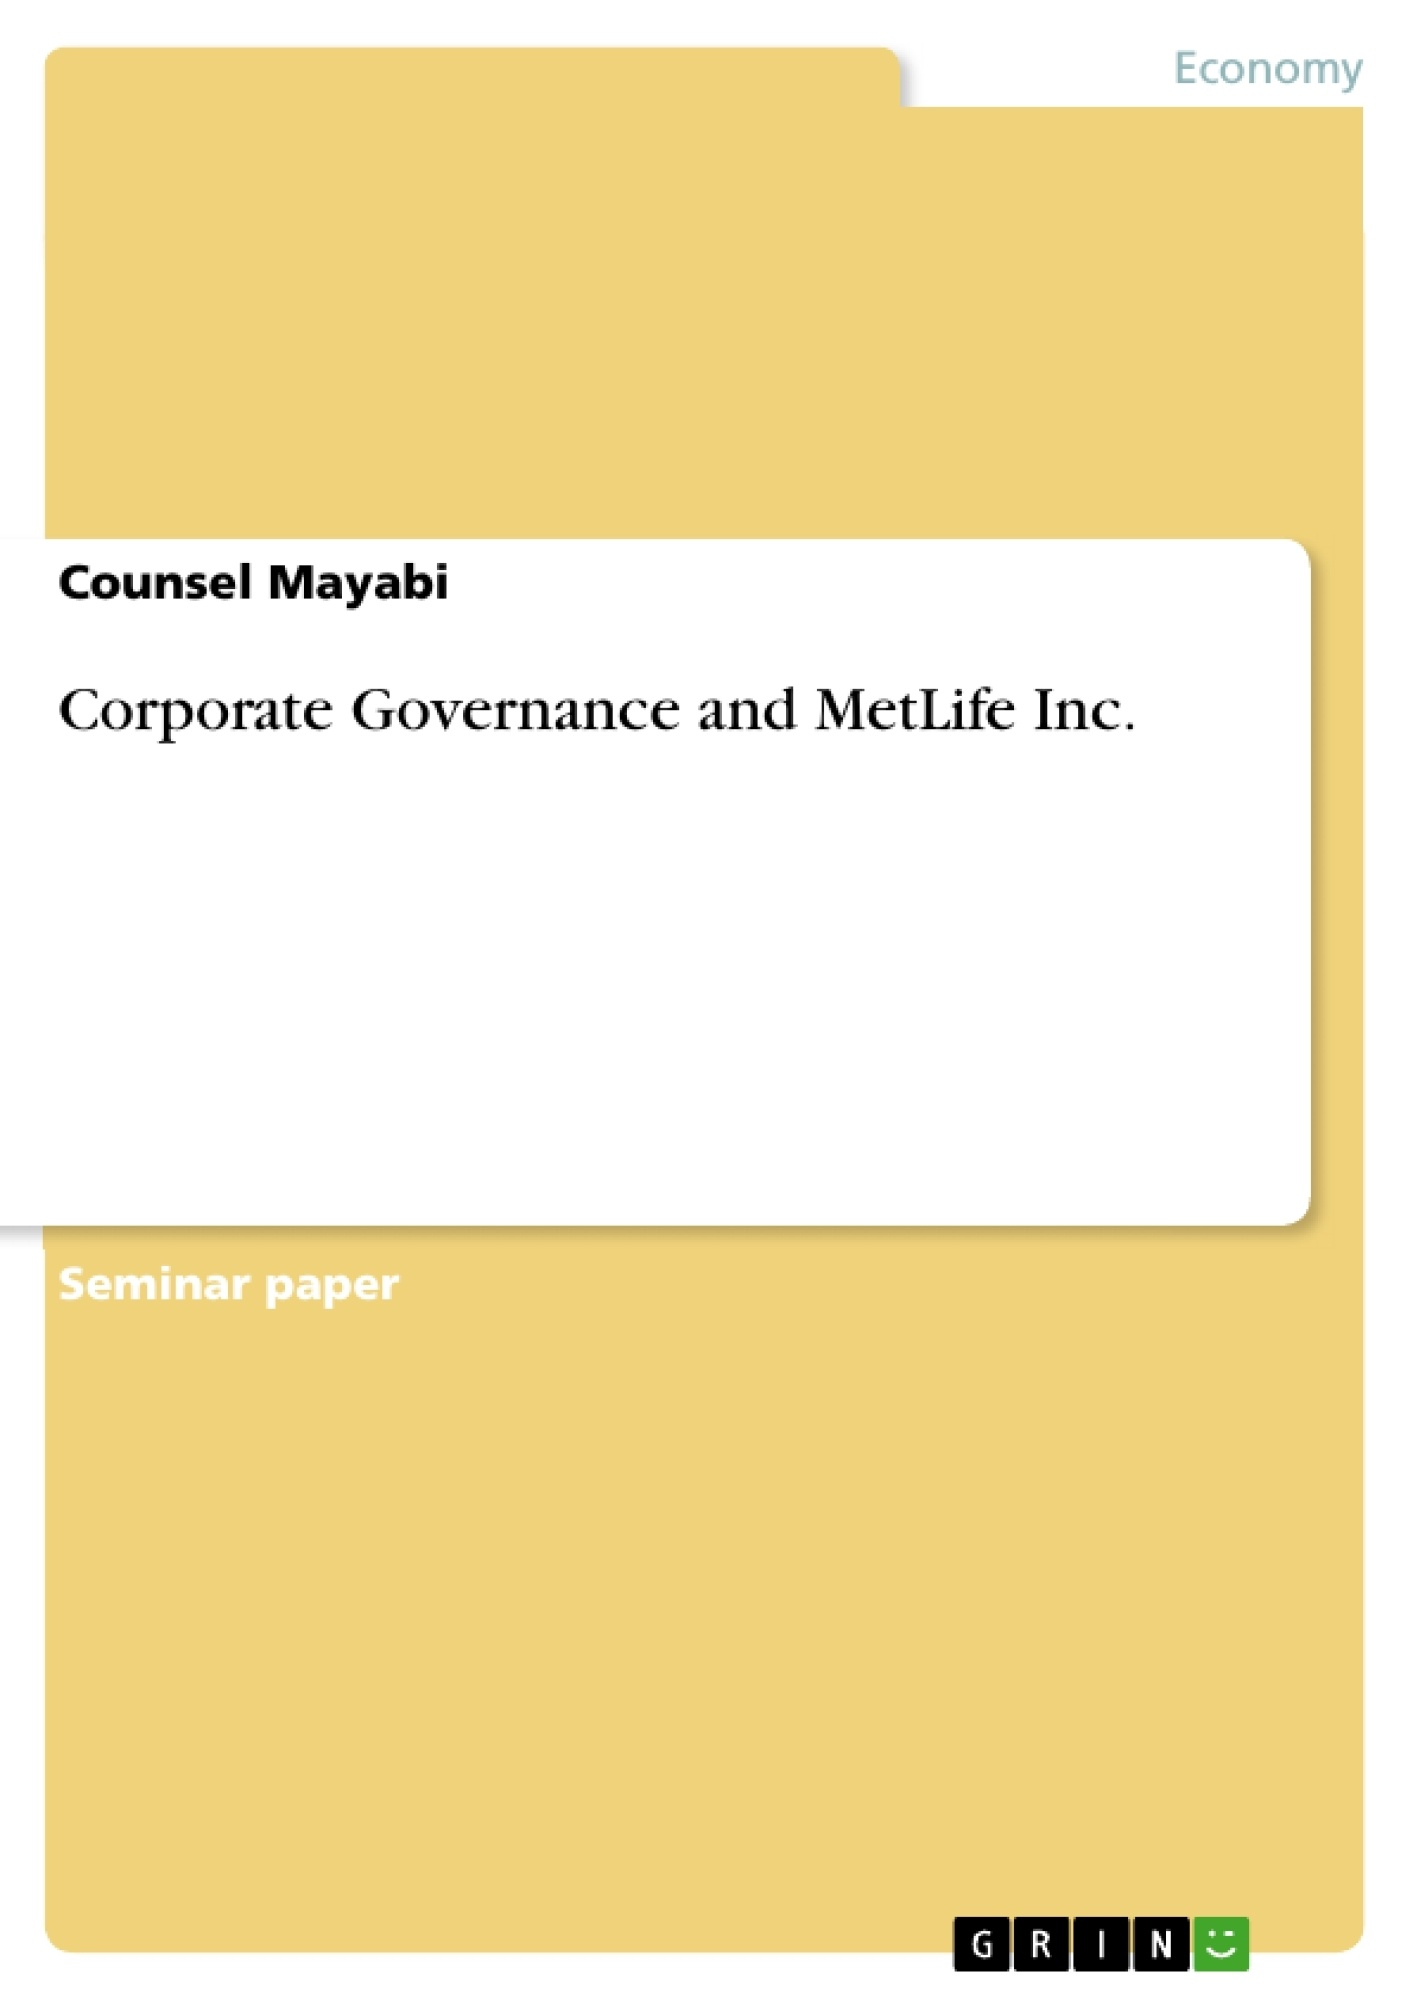 Title: Corporate Governance and MetLife Inc.